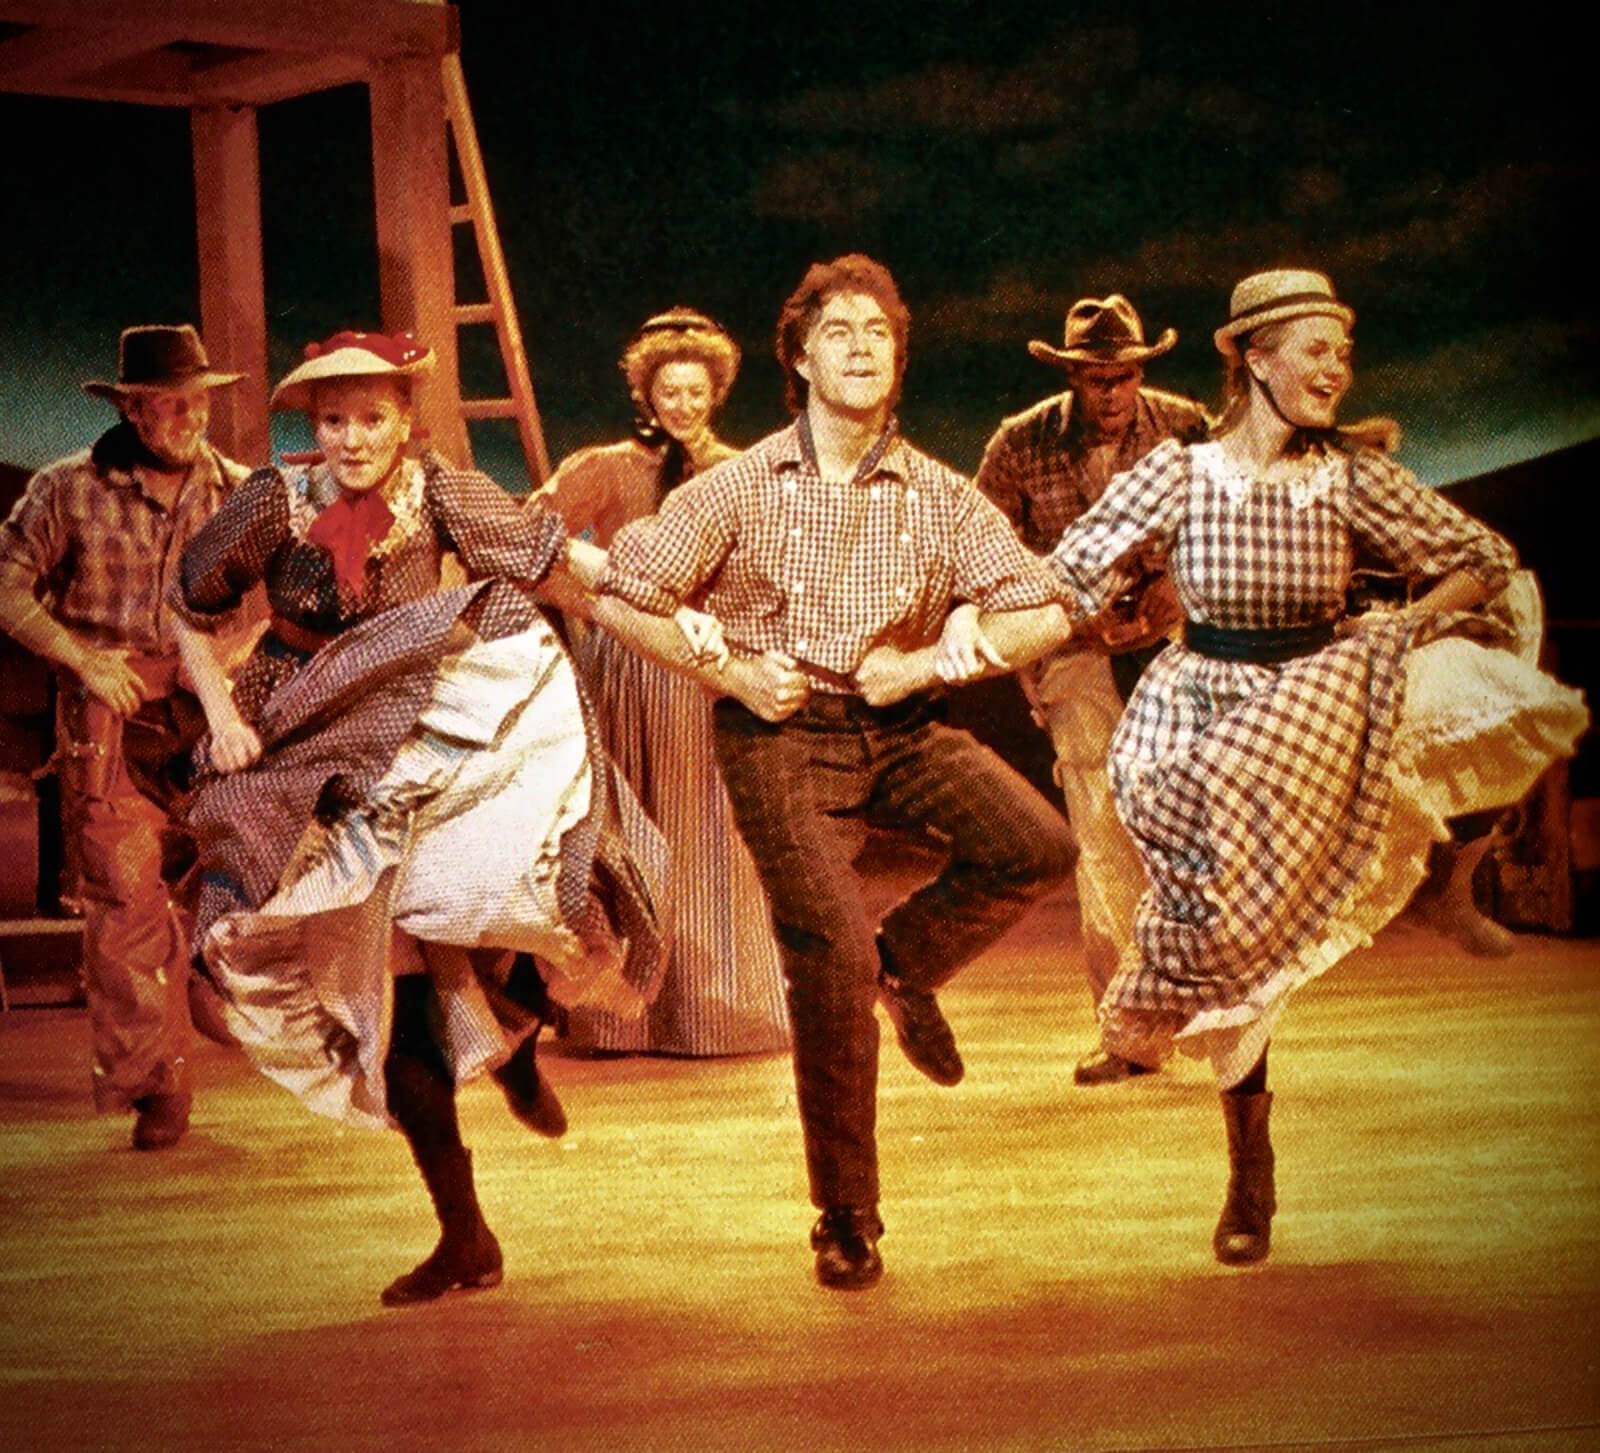 """Will Parker (Jimmy Johnson) singing and dancing with the company in """"Everything's up to date in Kansas City""""."""